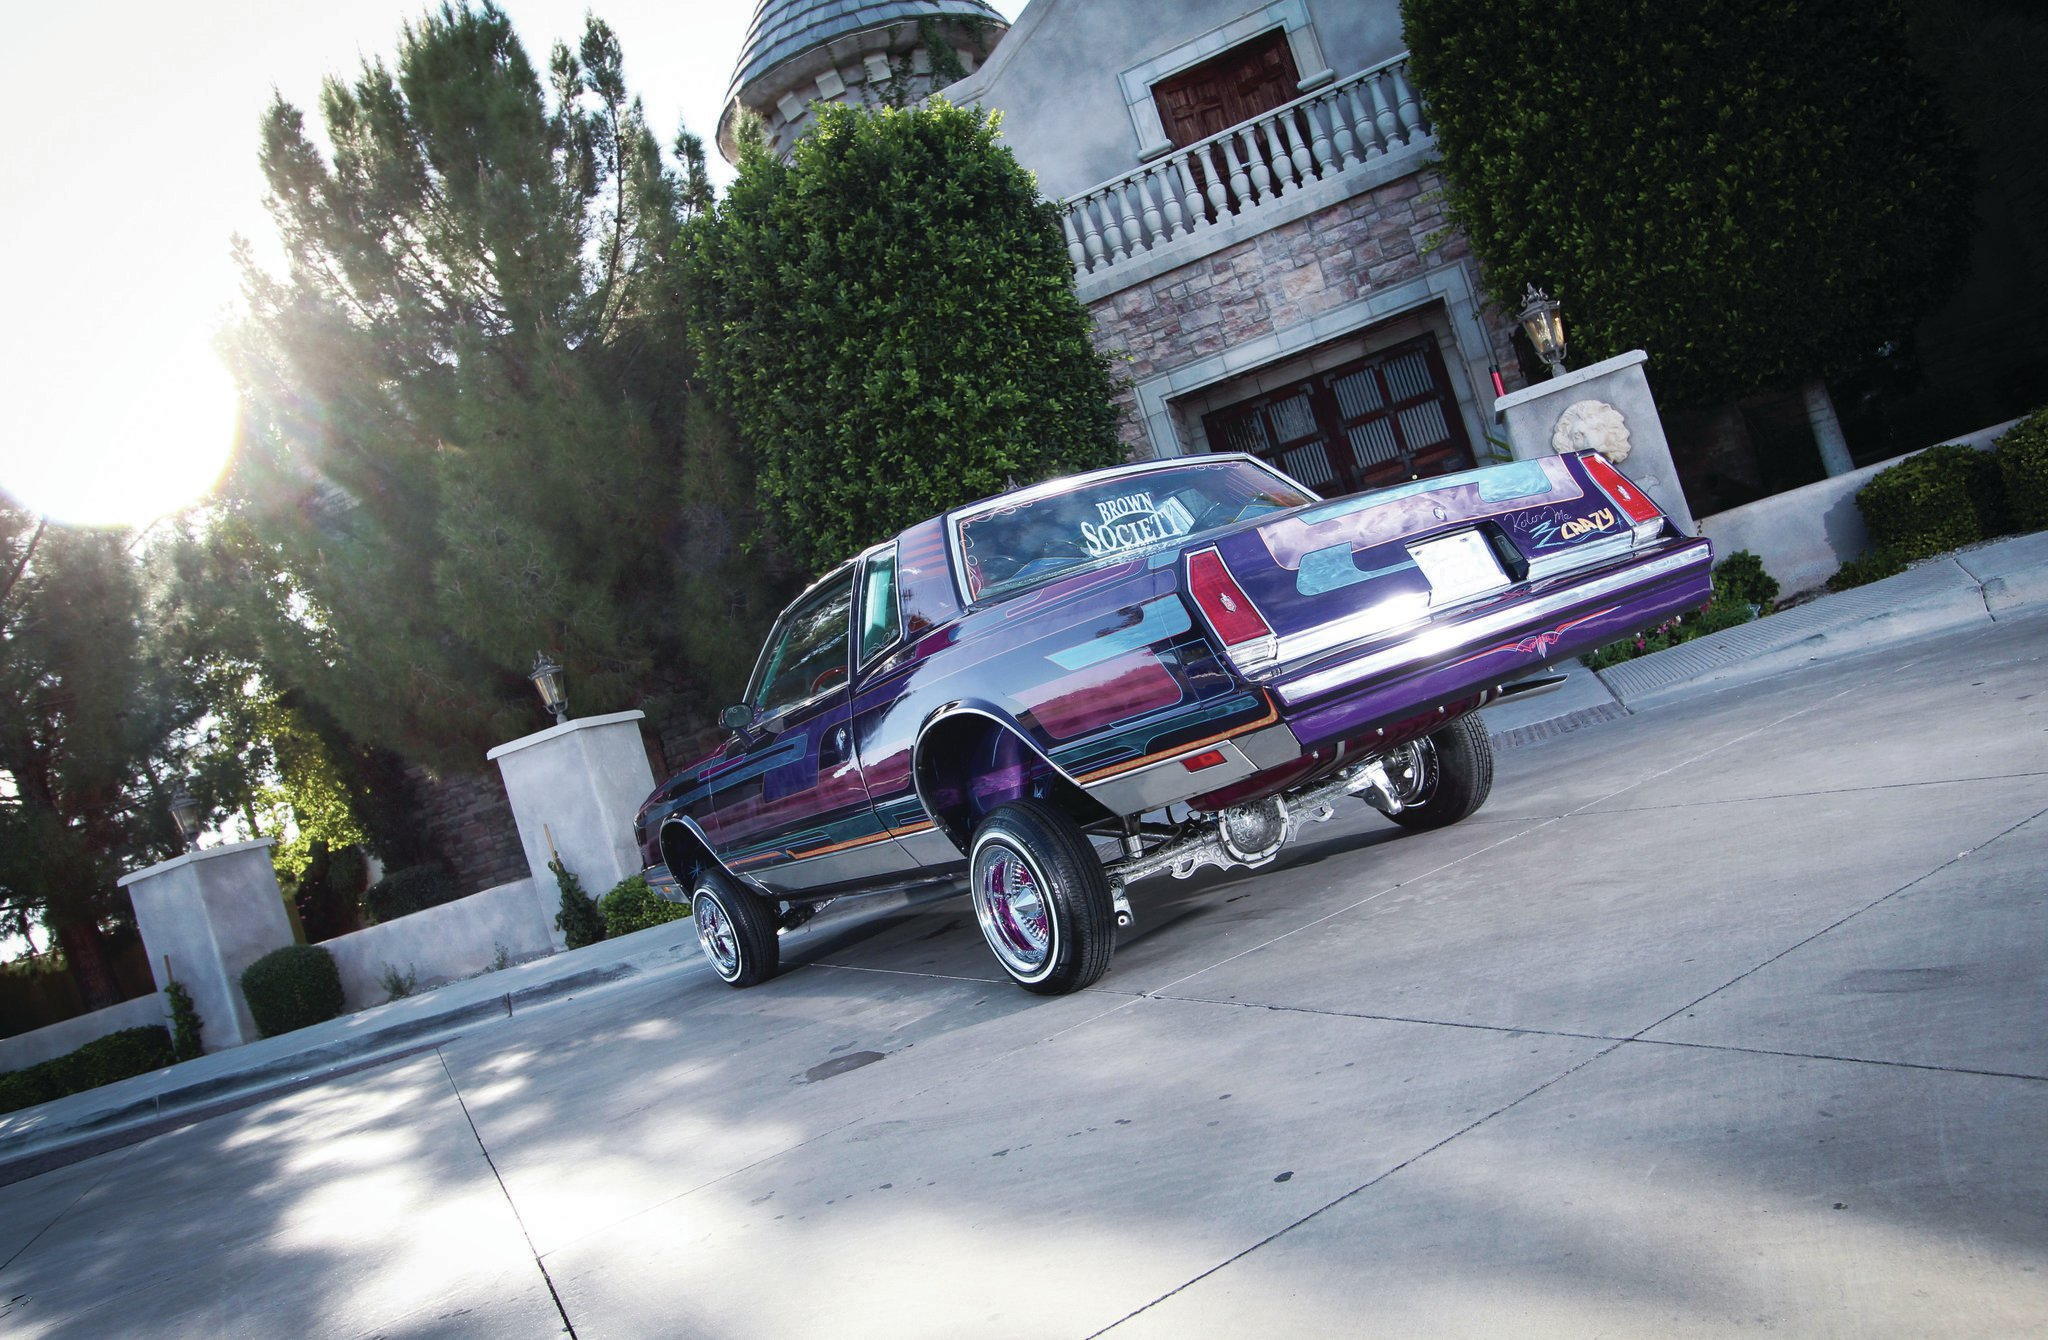 1983 Chevrolet Monte Carlo Driver Side Rear View Lowrider Chevy